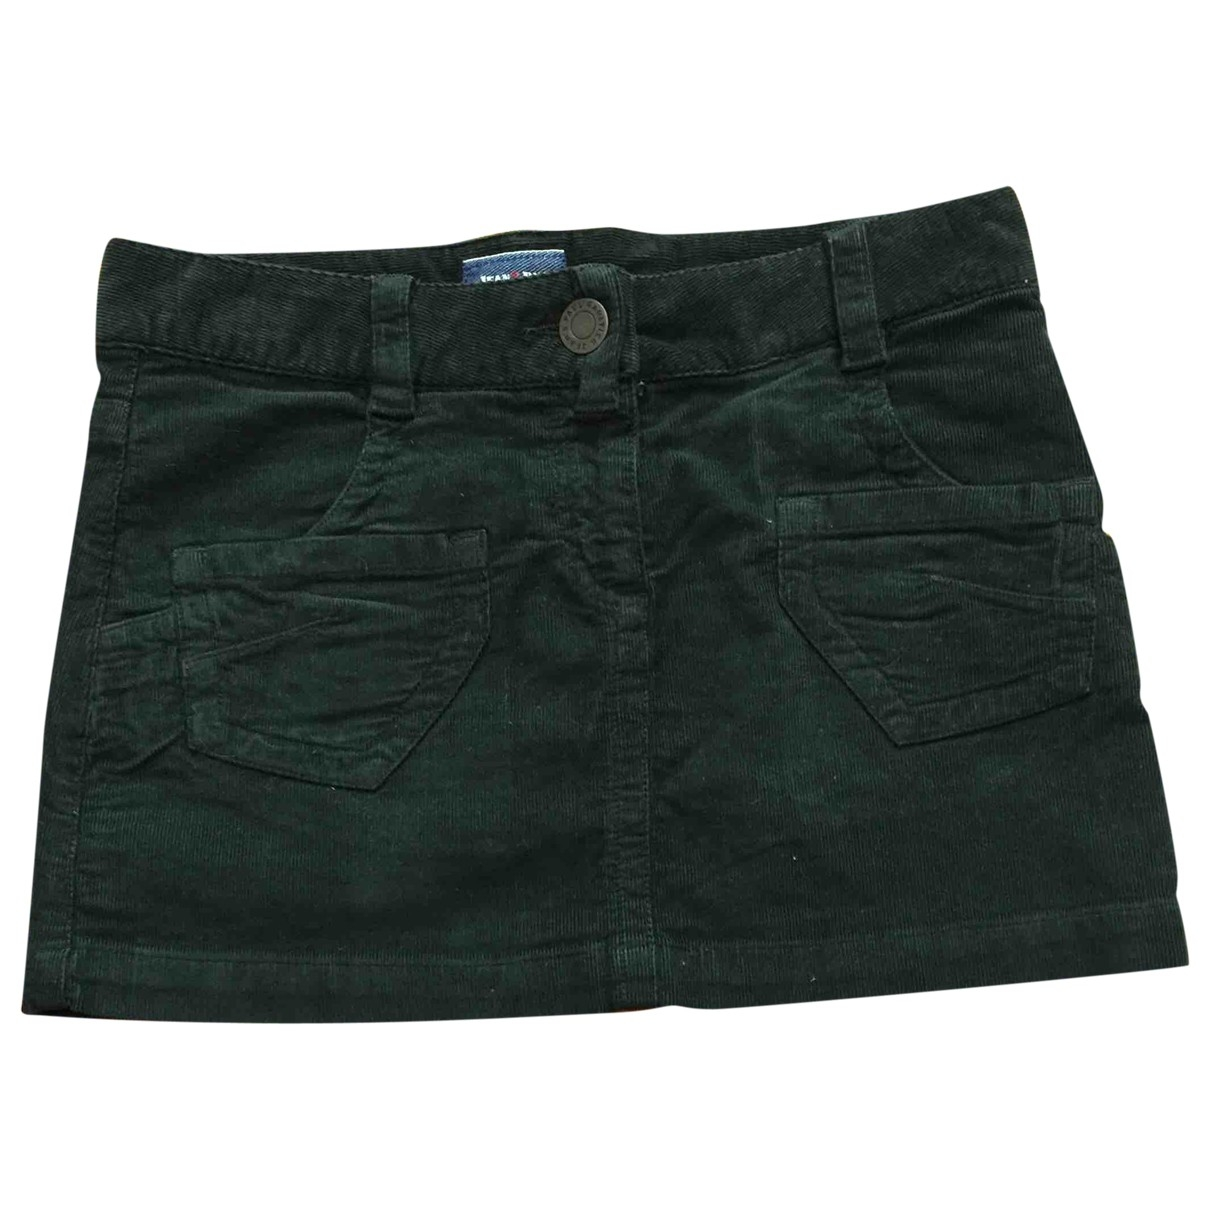 Jean Paul Gaultier \N Green Velvet skirt for Women 40 IT